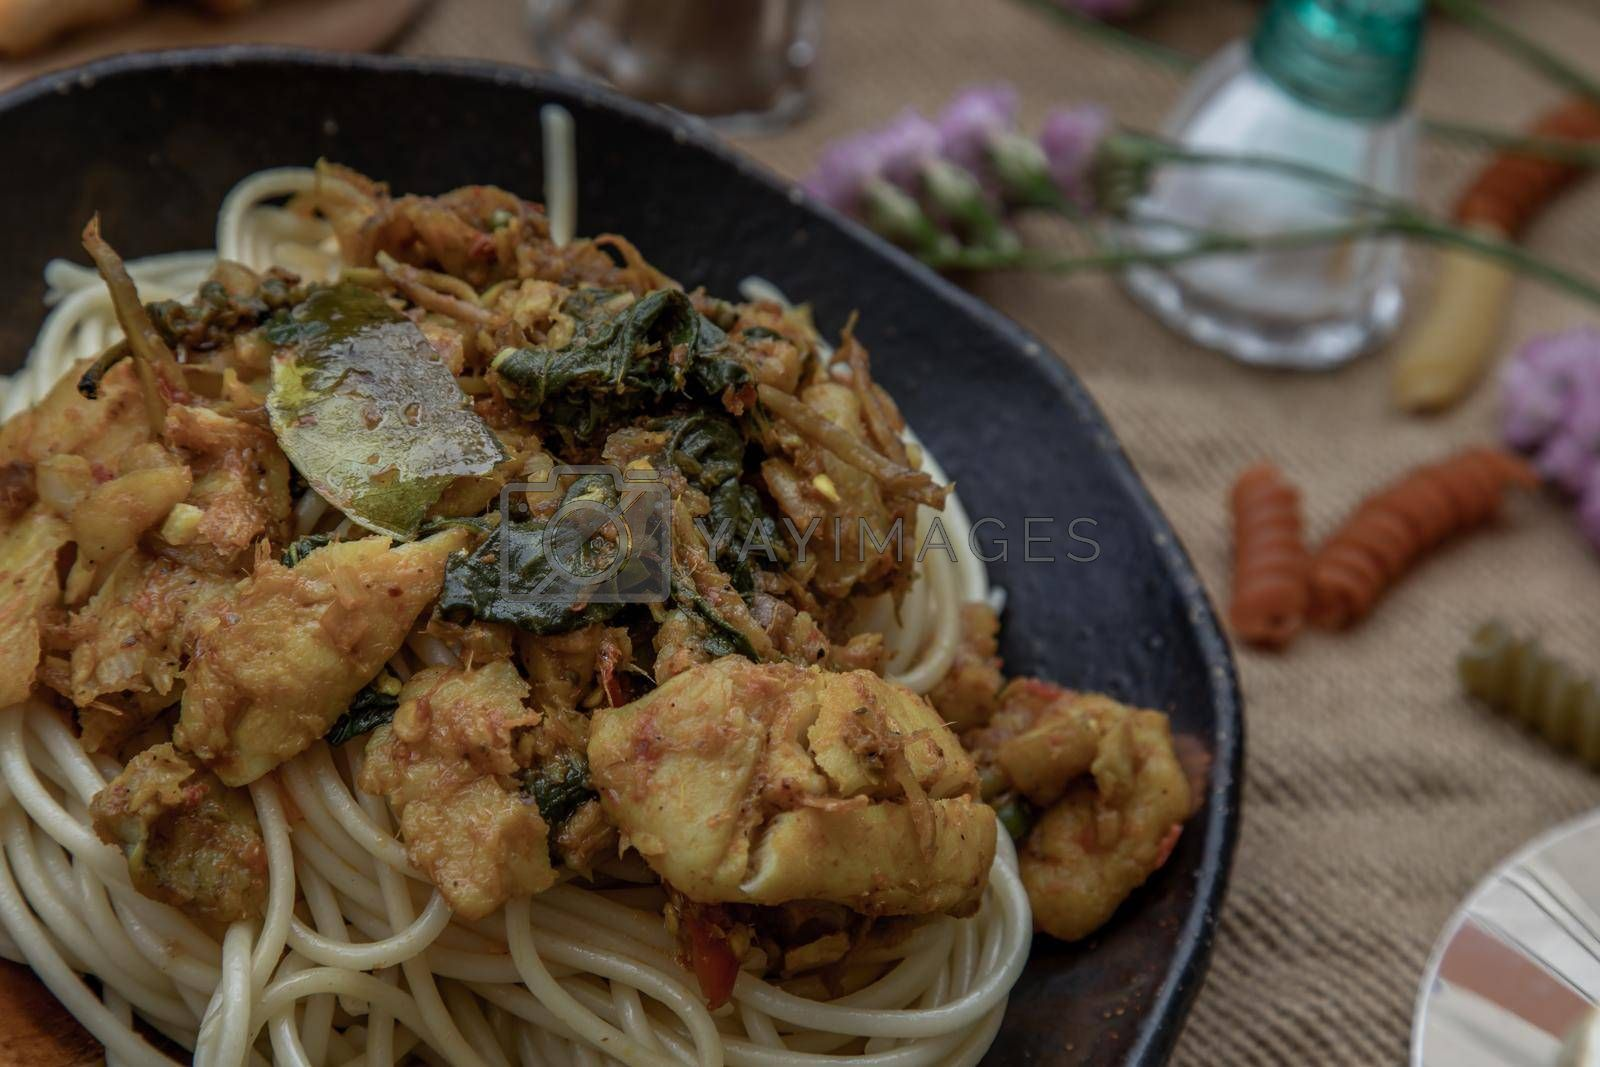 Close-up of Spaghetti topped with Stir fried spicy snapper on a brown plate. Selective Focus.